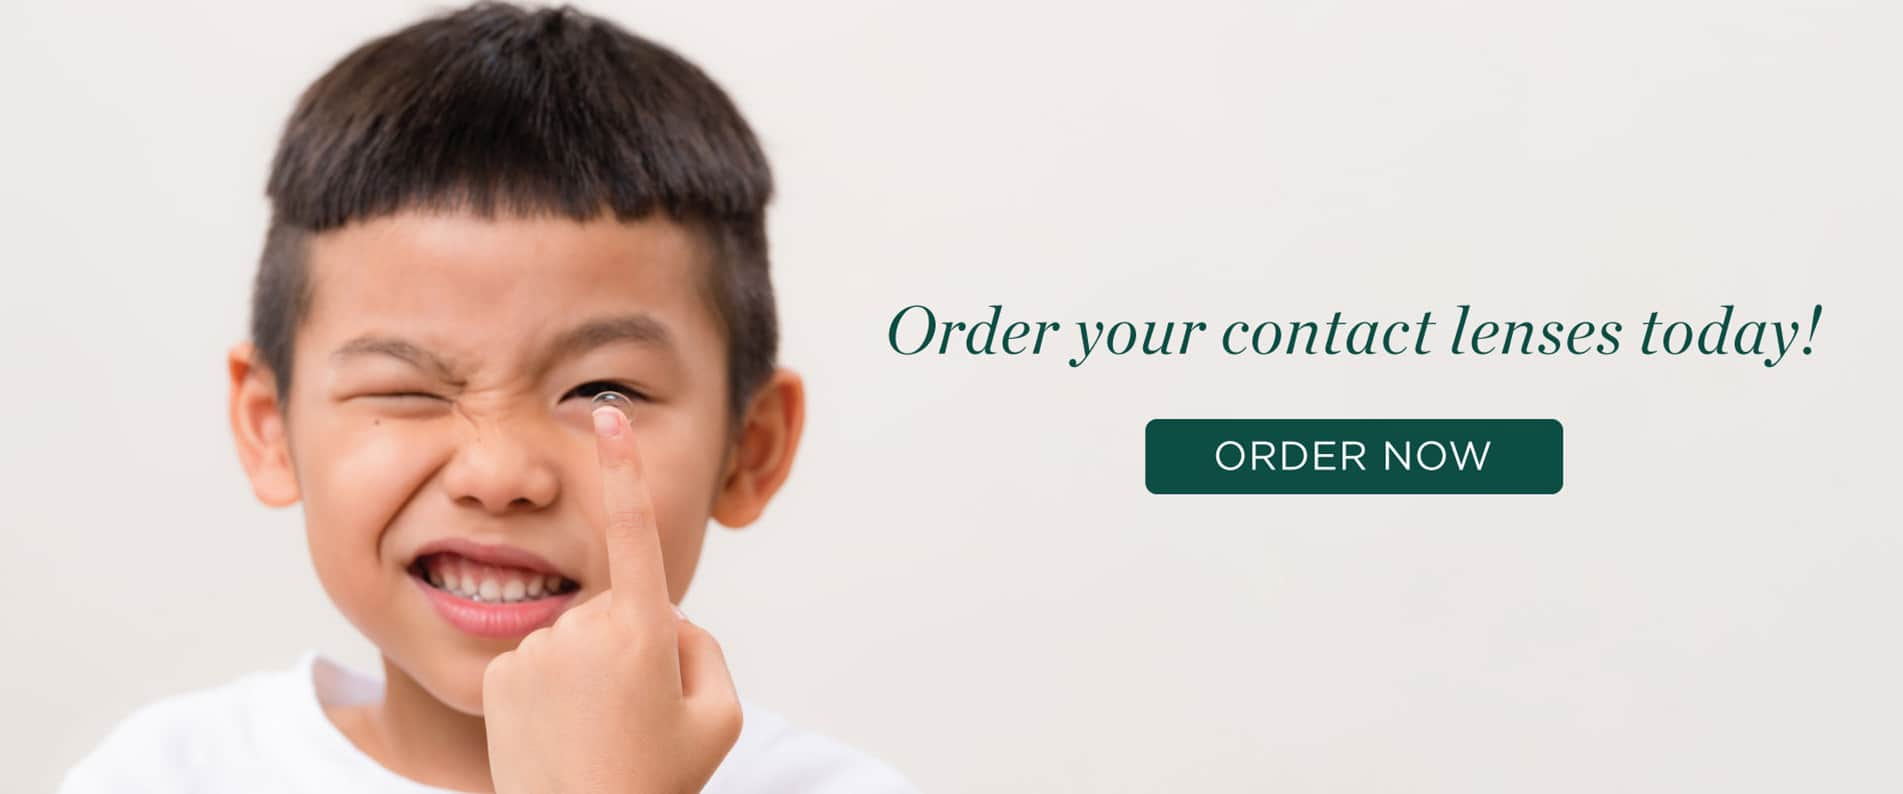 Order your contact lenses today!